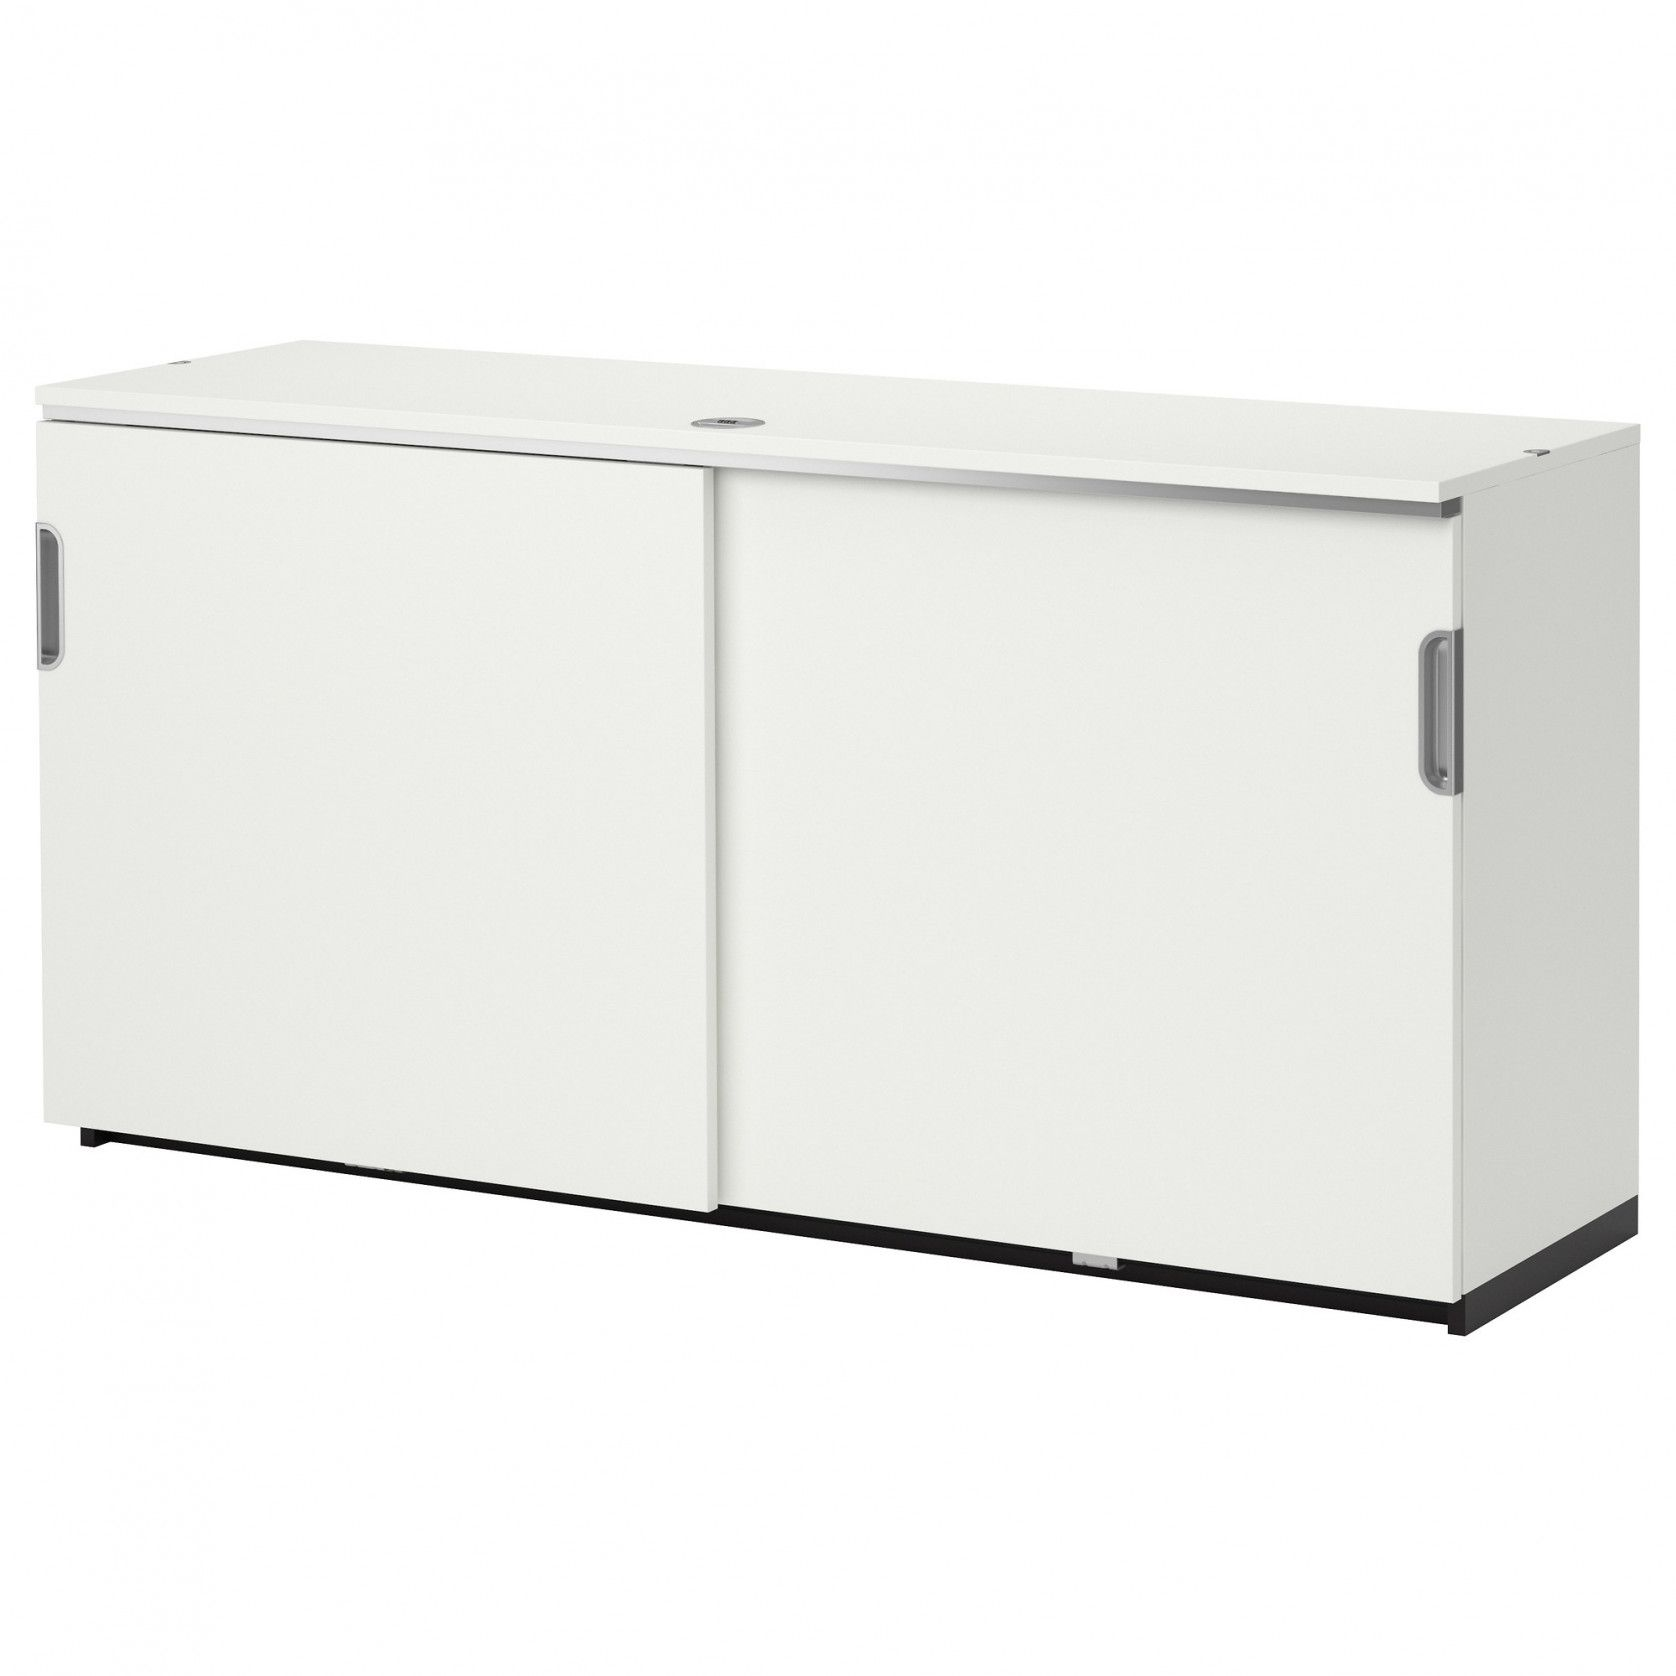 50 Lockable Filing Cabinet Ikea Kitchen Inserts Ideas Check More At Http